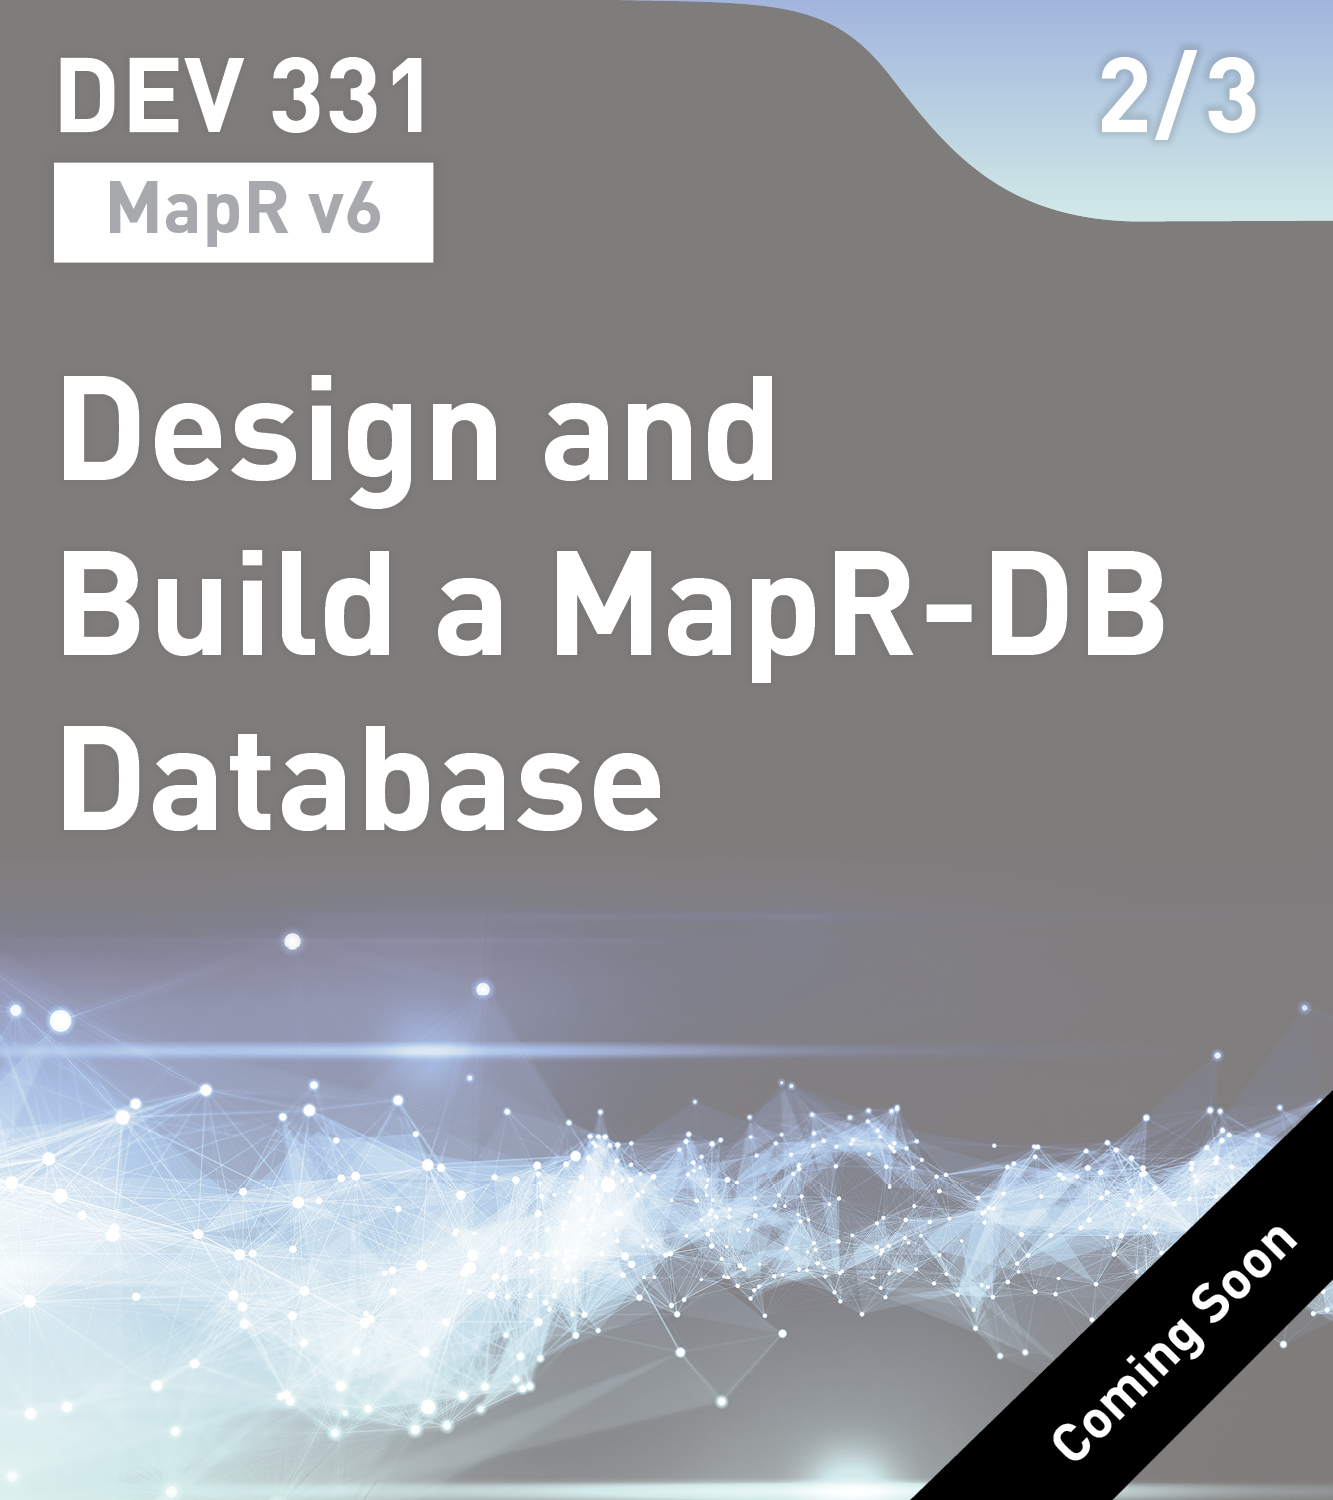 DEV 331 - Design and Build a MapR-DB Database (v6)